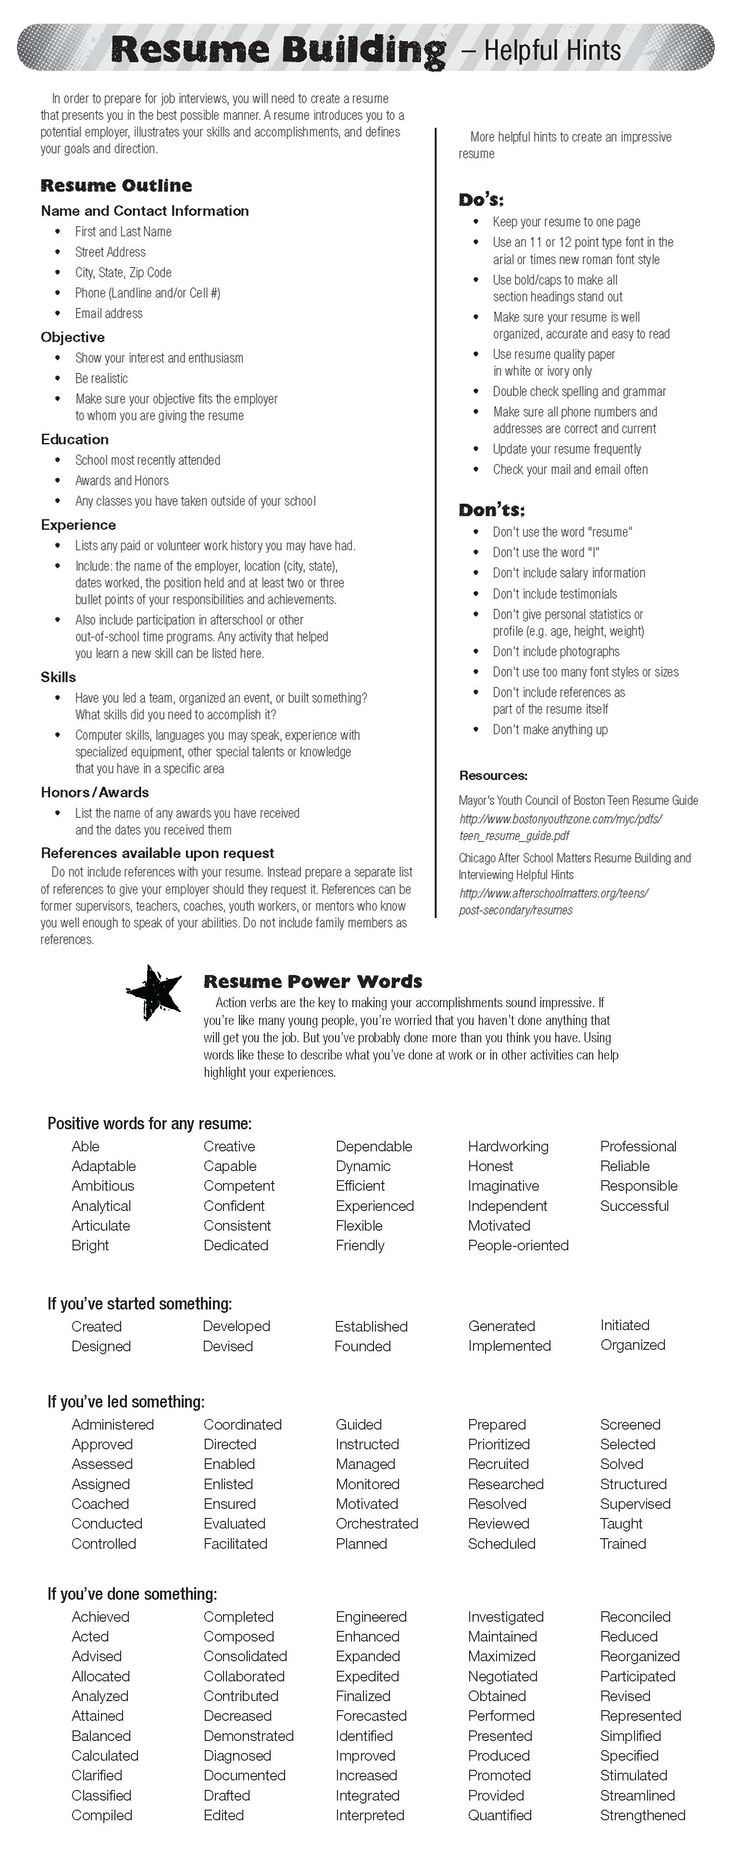 Opposenewapstandardsus  Nice  Ideas About Resume On Pinterest  Cv Format Resume Cv And  With Heavenly  Ideas About Resume On Pinterest  Cv Format Resume Cv And Resume Templates With Cool Current Resume Examples Also Resume Examples Retail In Addition Send Resume Email And Sushi Chef Resume As Well As High School Resume Template Word Additionally Combination Resume Format From Pinterestcom With Opposenewapstandardsus  Heavenly  Ideas About Resume On Pinterest  Cv Format Resume Cv And  With Cool  Ideas About Resume On Pinterest  Cv Format Resume Cv And Resume Templates And Nice Current Resume Examples Also Resume Examples Retail In Addition Send Resume Email From Pinterestcom